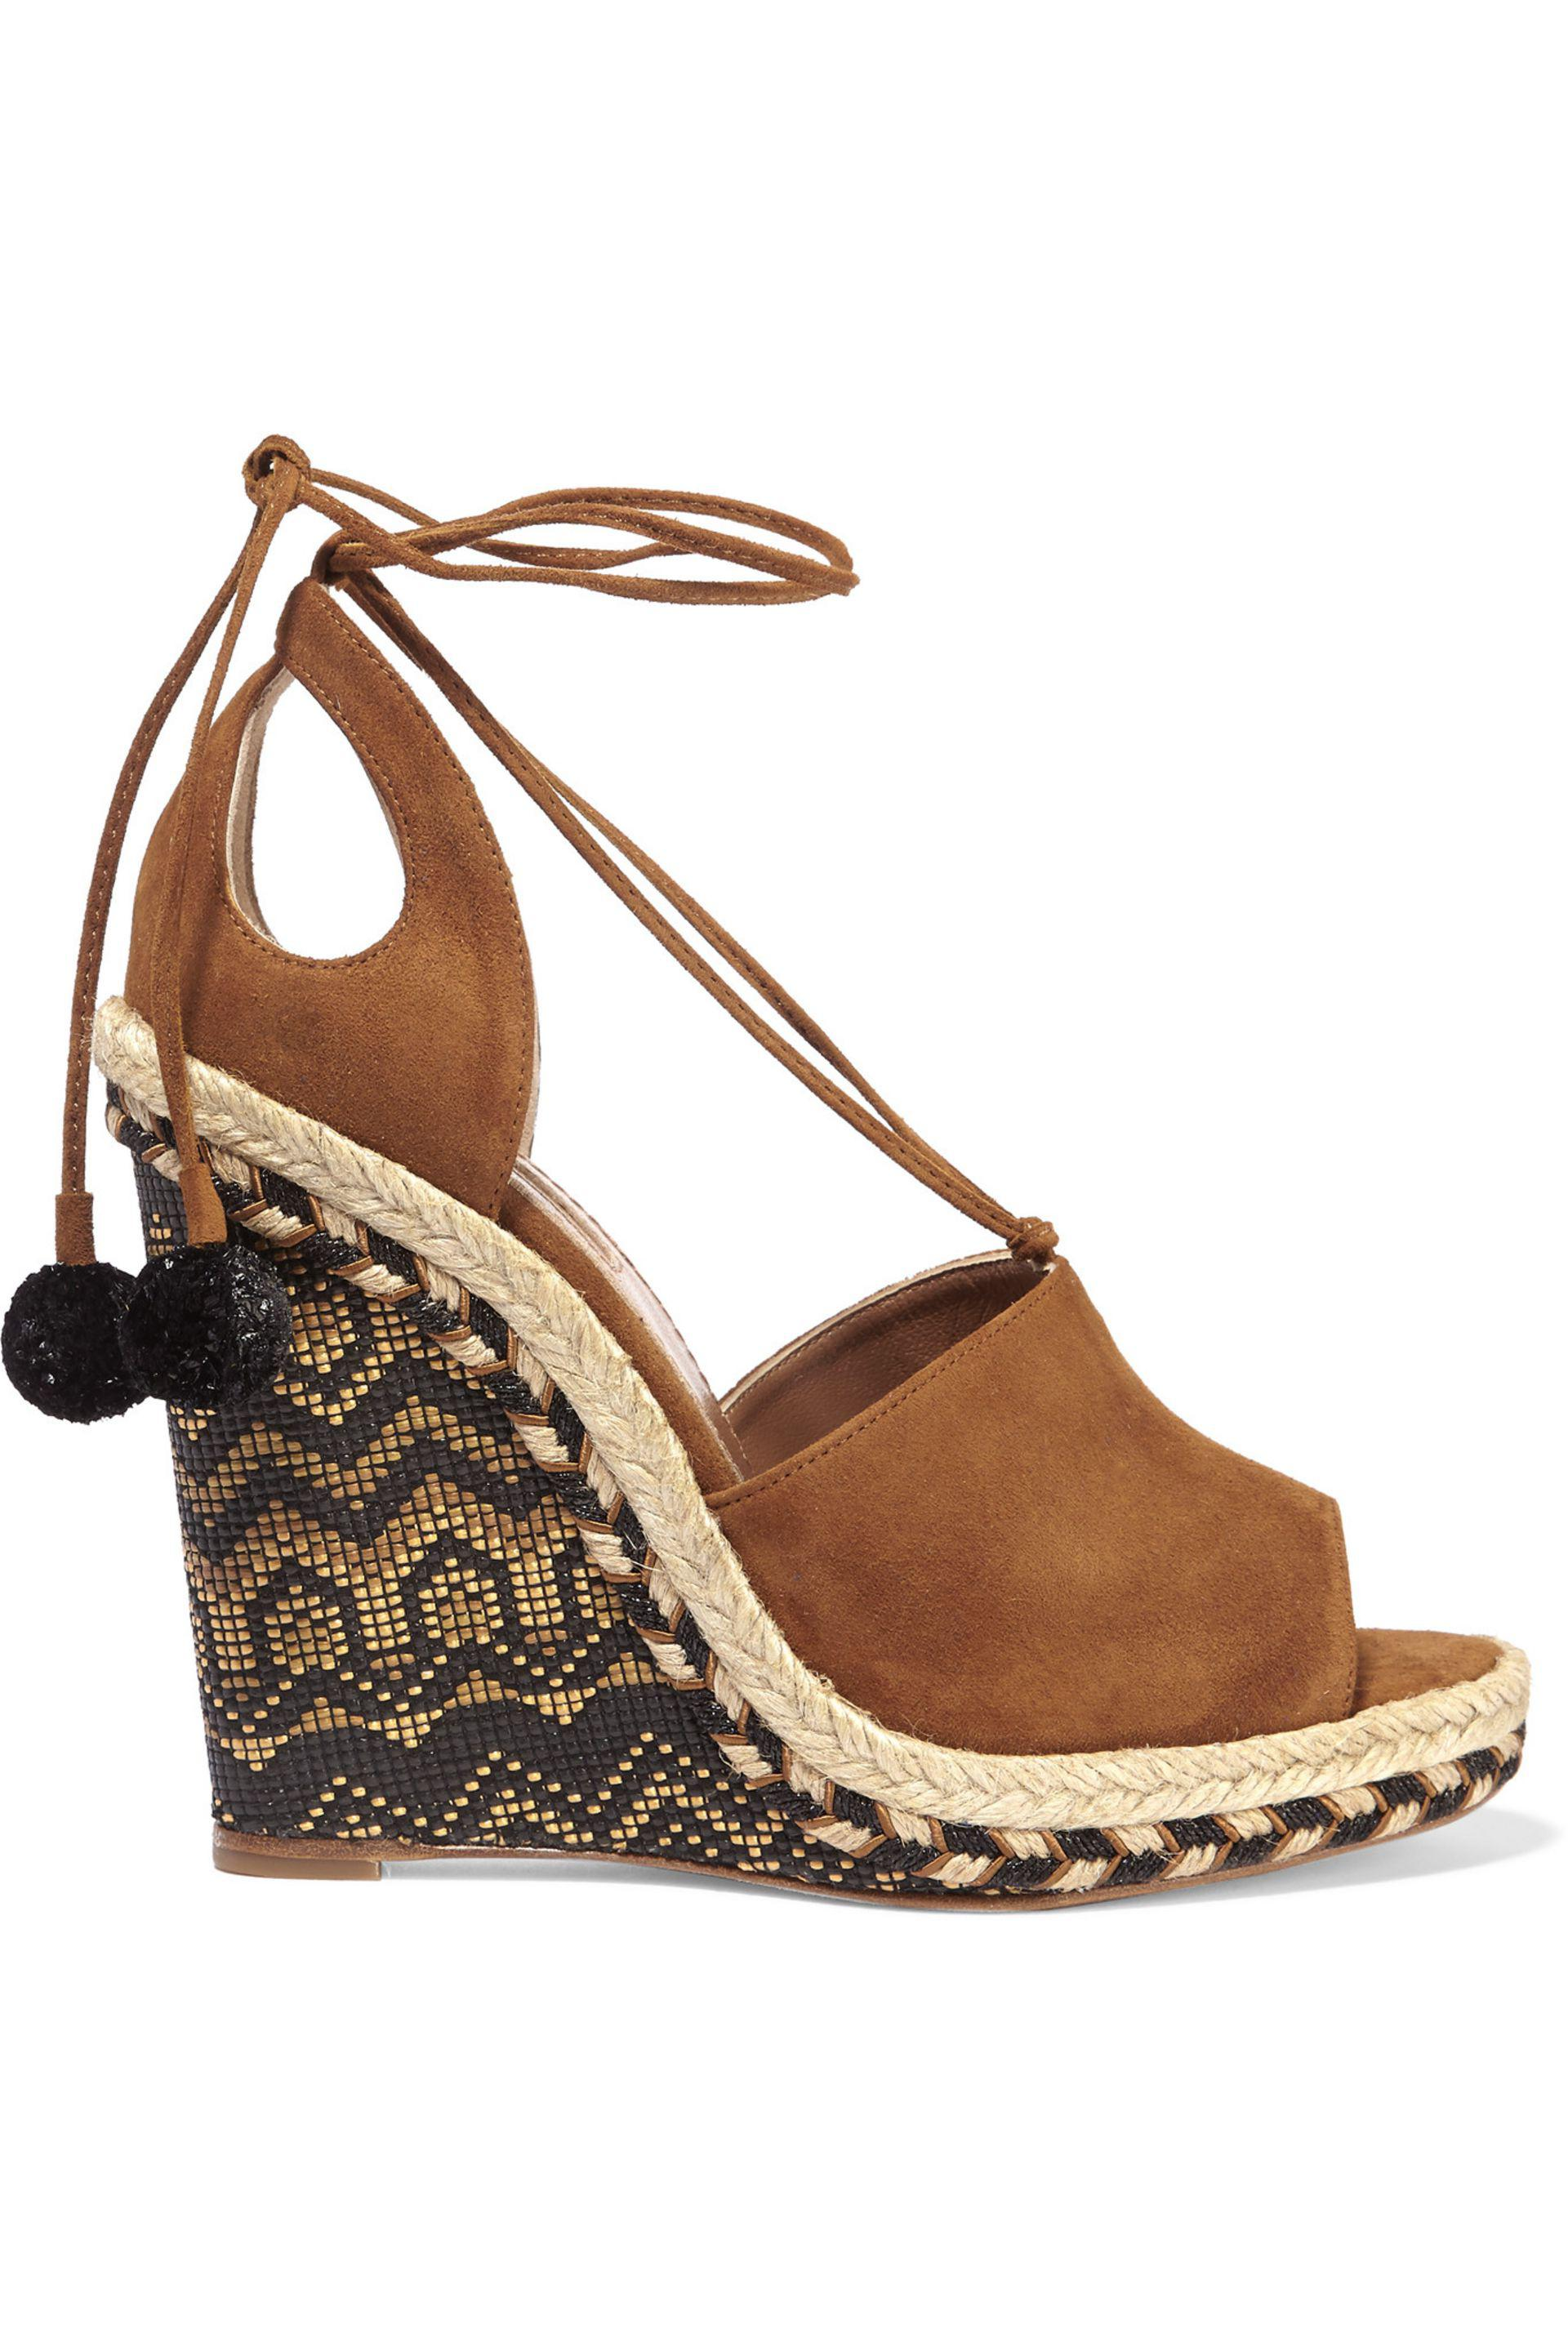 Aquazzura Suede Cutout Wedges cheap sale best store to get free shipping sale online outlet looking for limited edition cheap online 1vZUTo3Q